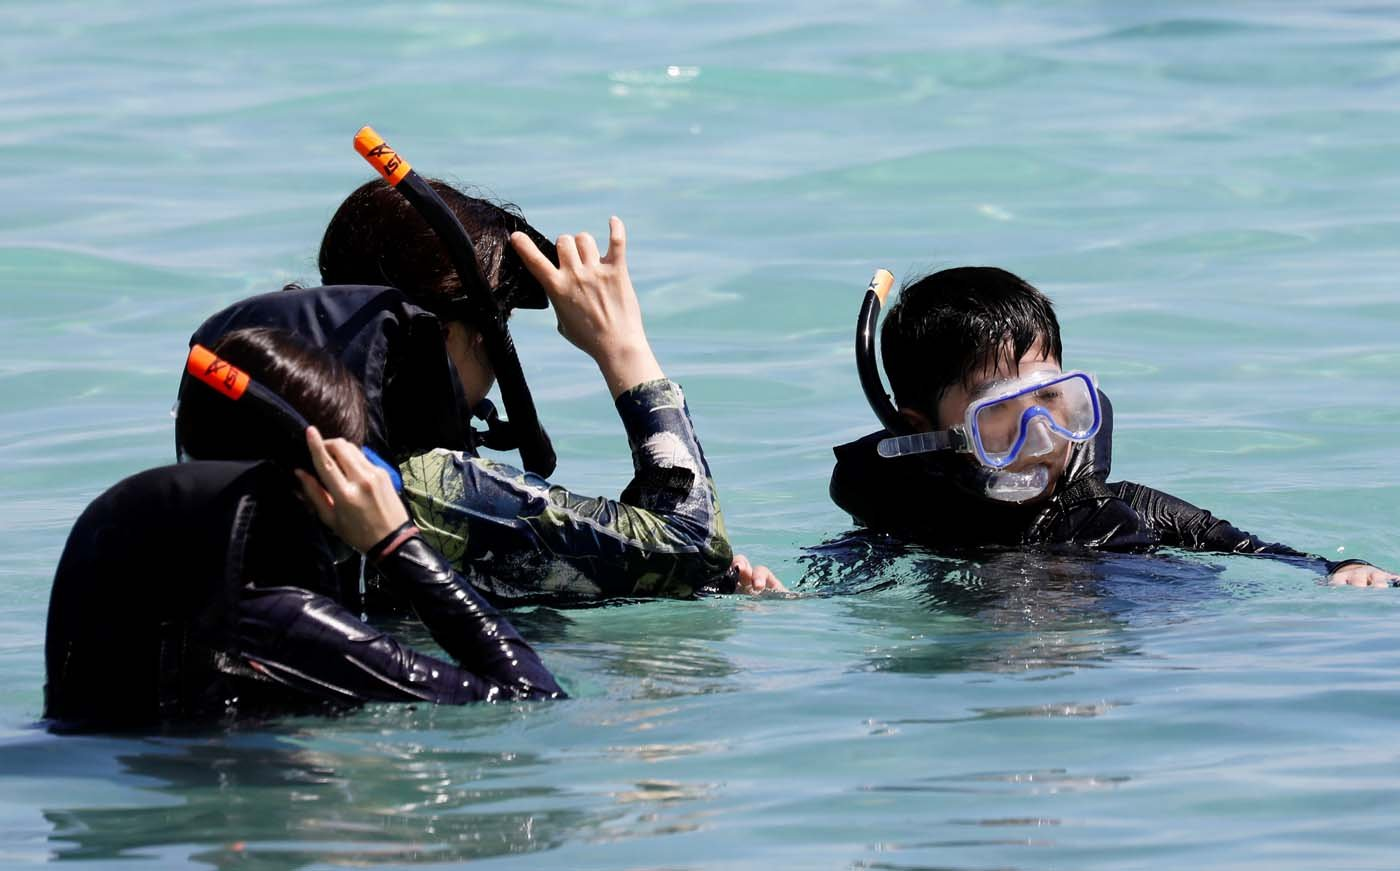 Tourists snorkel on the waters off Tumon beach on the island of Guam, a U.S. Pacific Territory, August 11, 2017. REUTERS/Erik De Castro